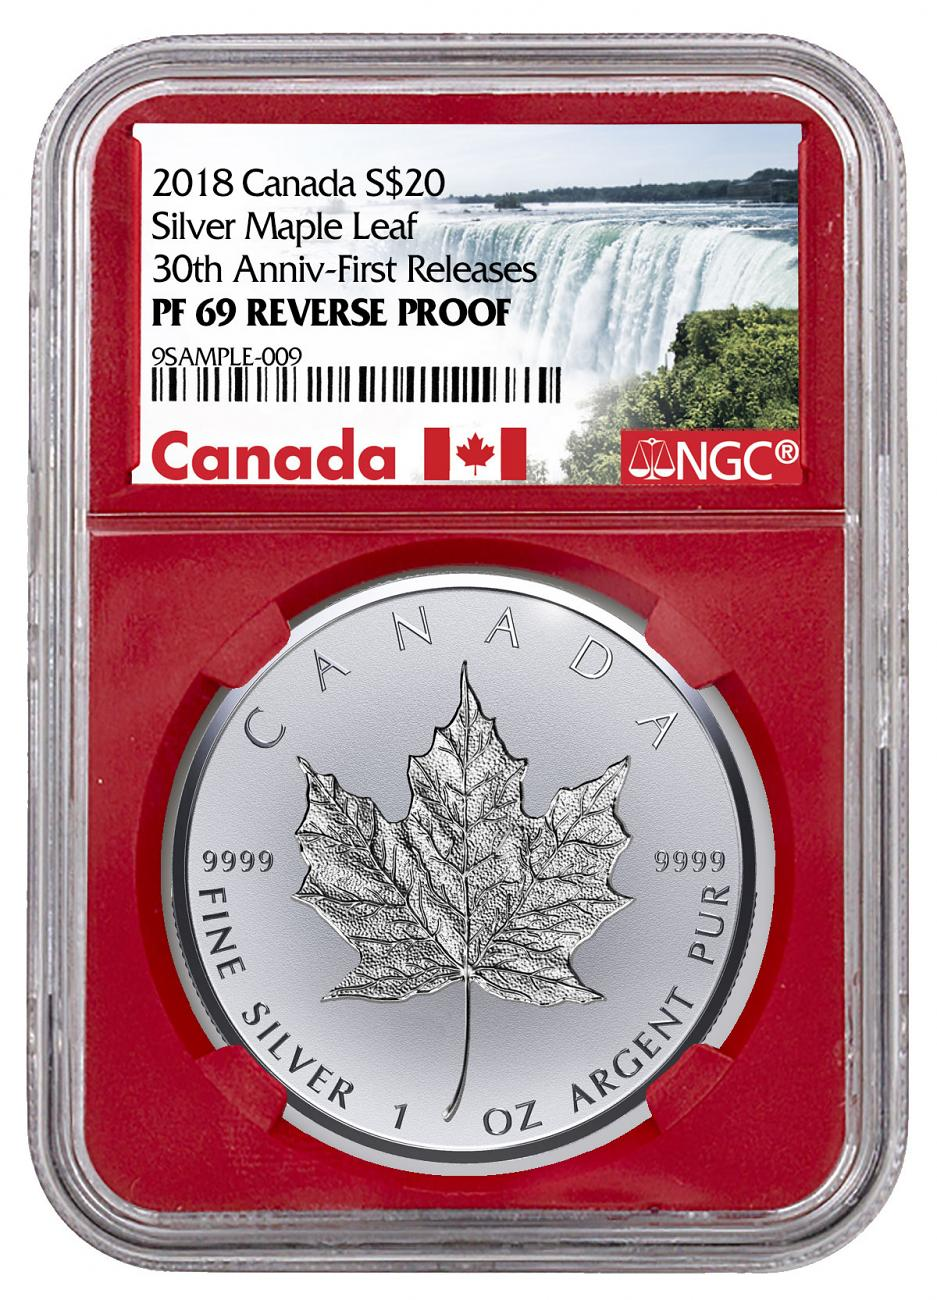 2018 Canada 1 oz Silver Maple Leaf - Incuse Reverse Proof $20 Coin NGC PF69 FR Red Core Holder Exclusive Canada Label